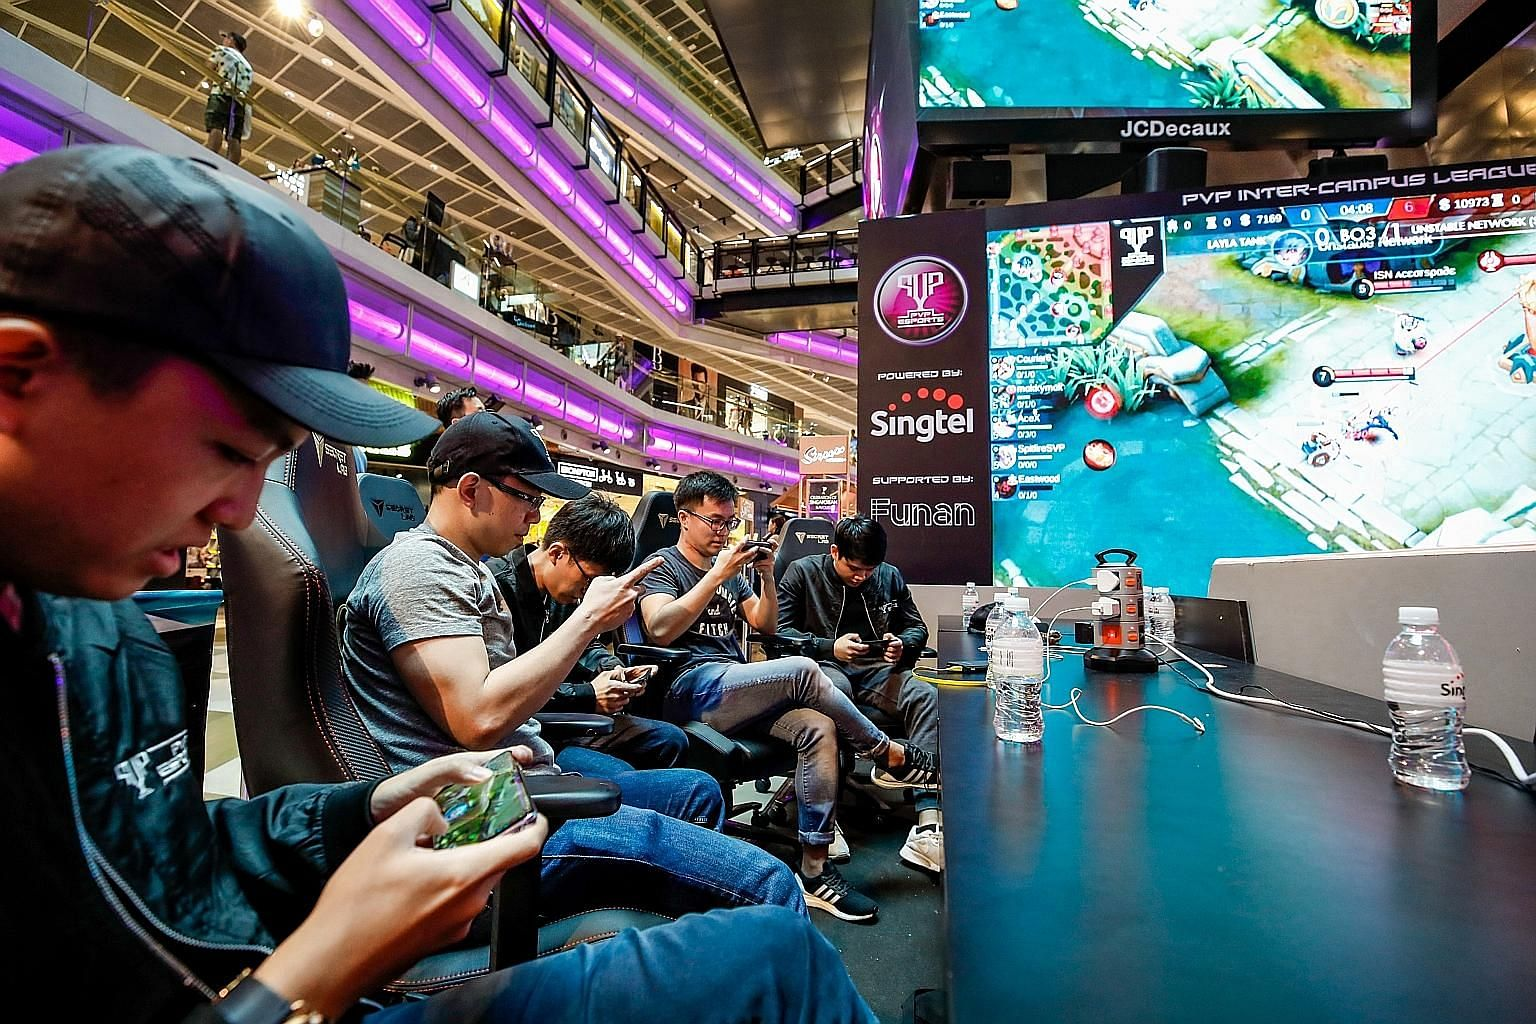 Mobile phones and other gadgets on the market tend to overheat and shut down after running on a 5G network for a short time, as they cannot supply the large amount of power needed for 5G, but the Singapore-MIT Alliance for Research and Technology has